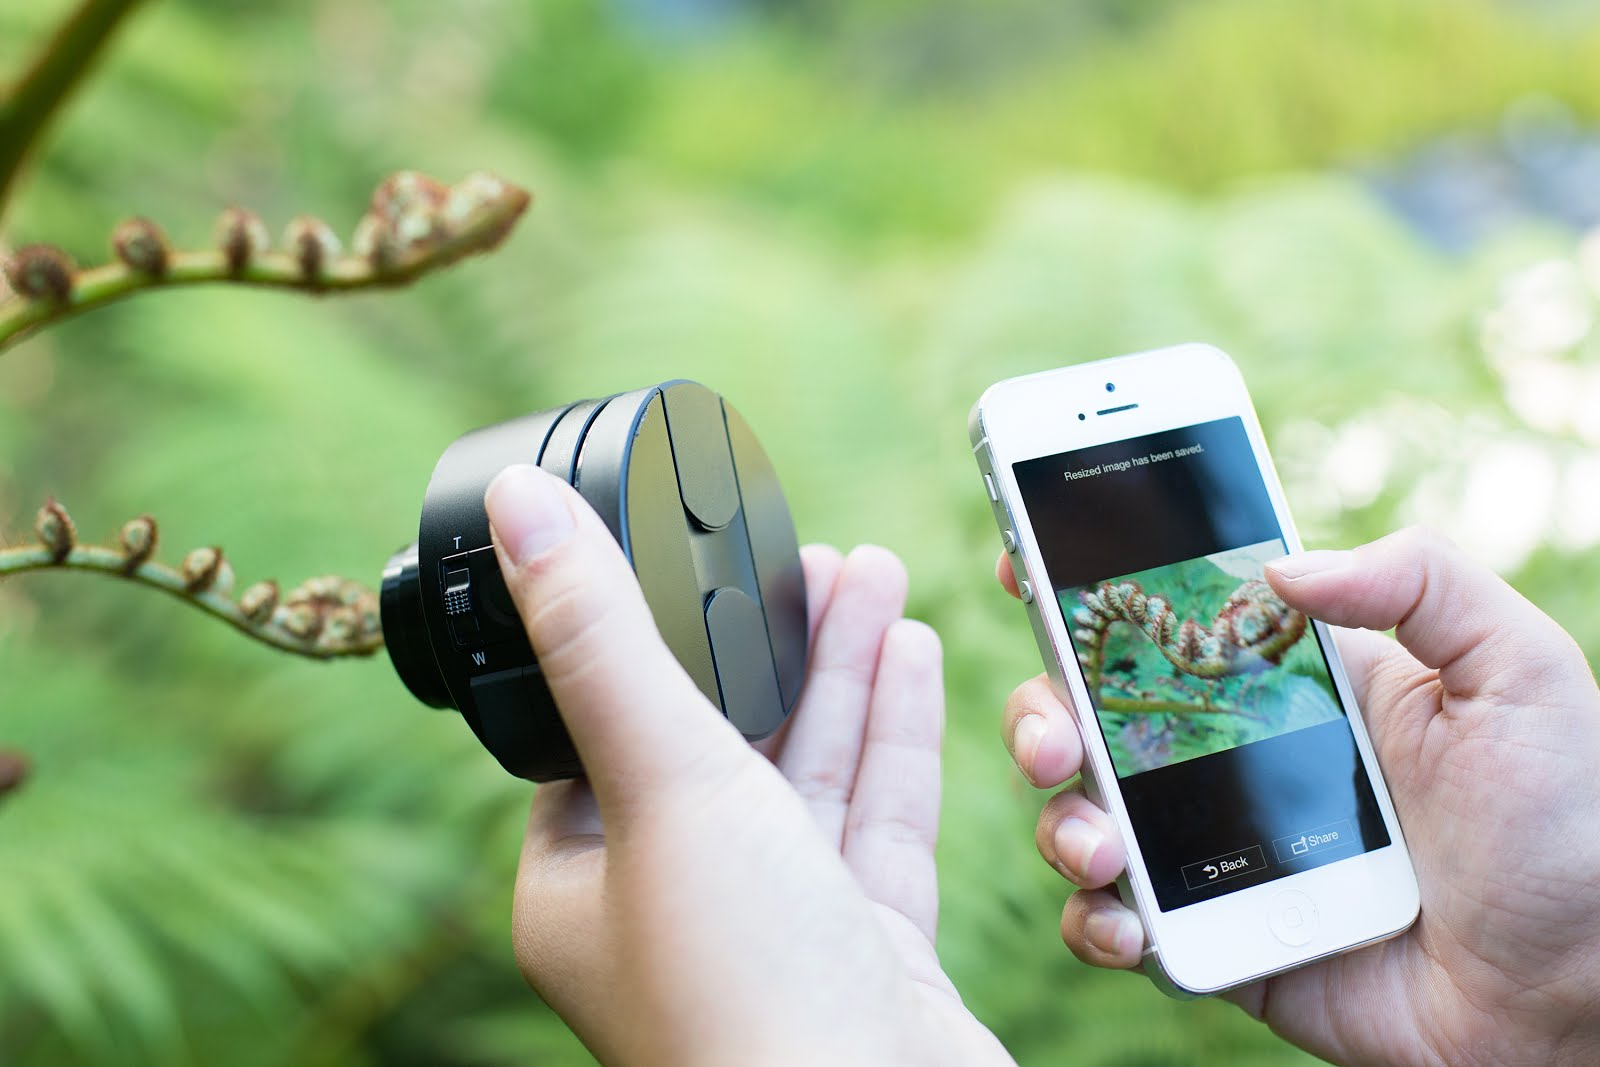 A detachable lense QX100 for mobile phones from Sony